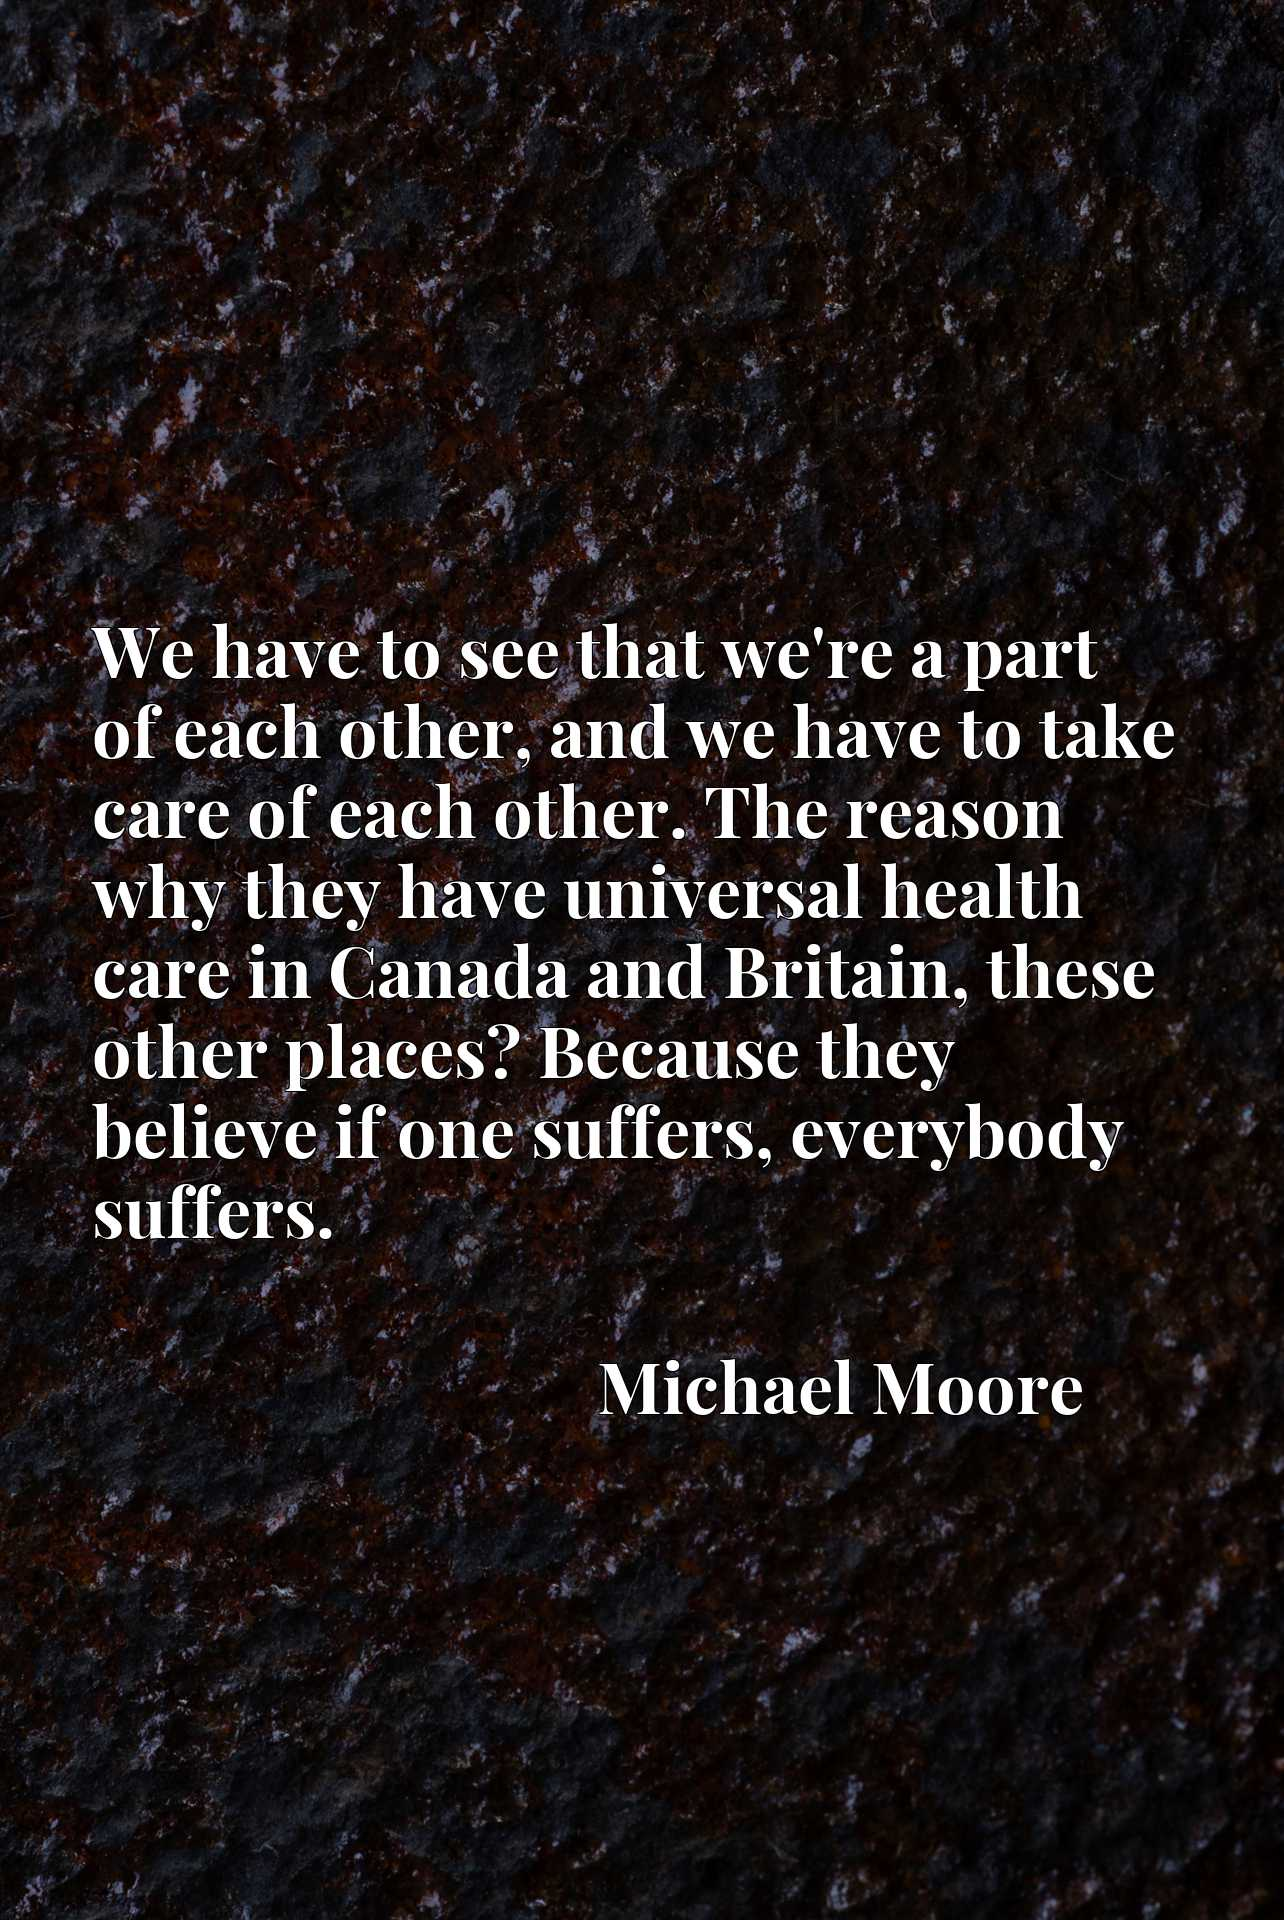 We have to see that we're a part of each other, and we have to take care of each other. The reason why they have universal health care in Canada and Britain, these other places? Because they believe if one suffers, everybody suffers.